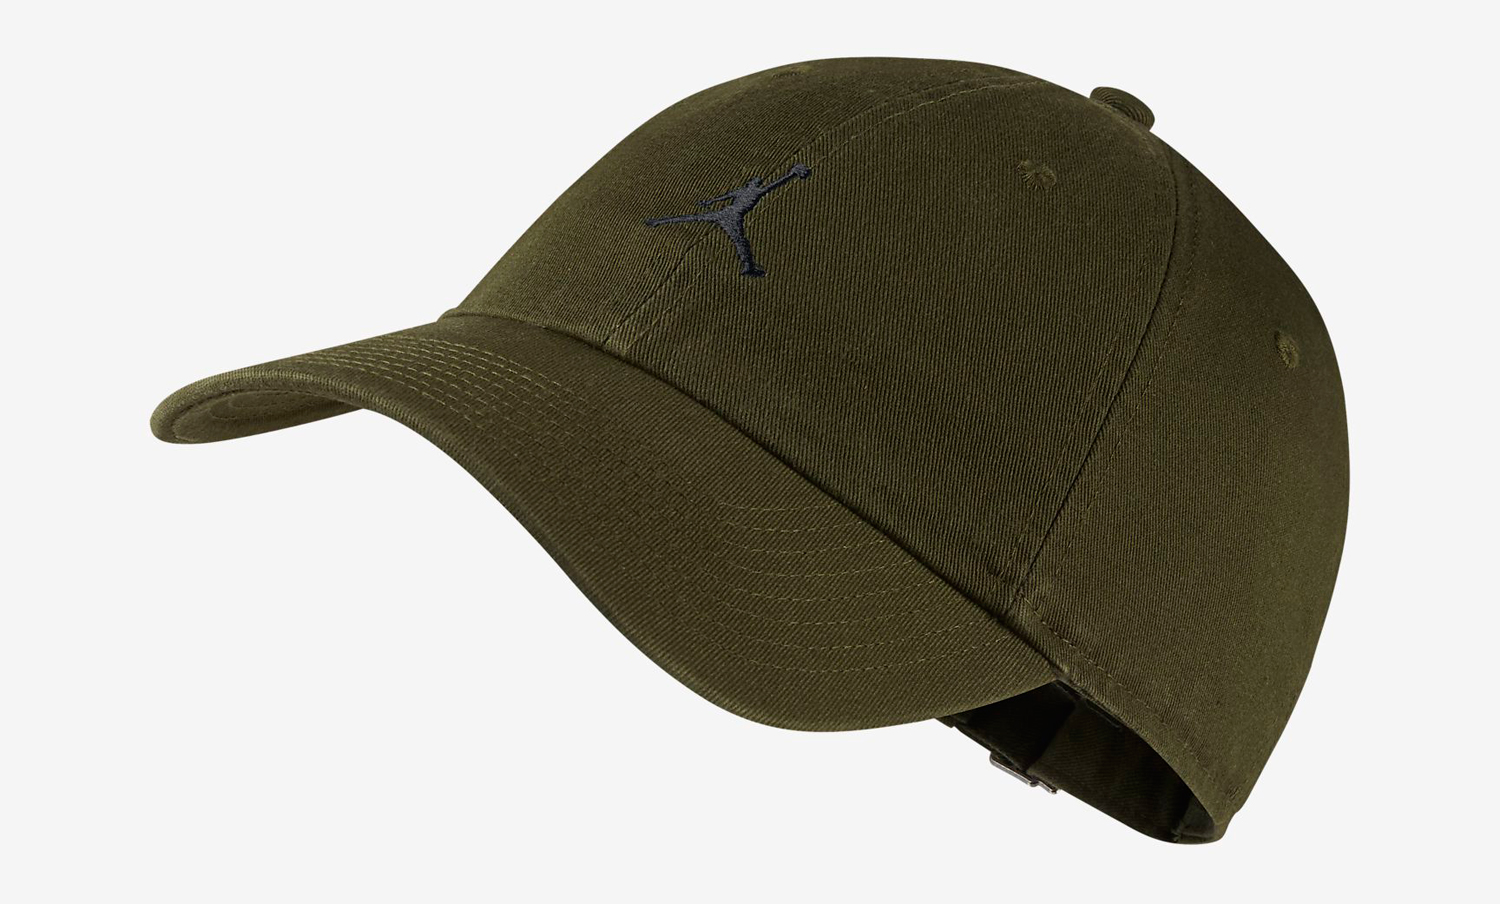 jordan-12-chris-paul-olive-dad-cap